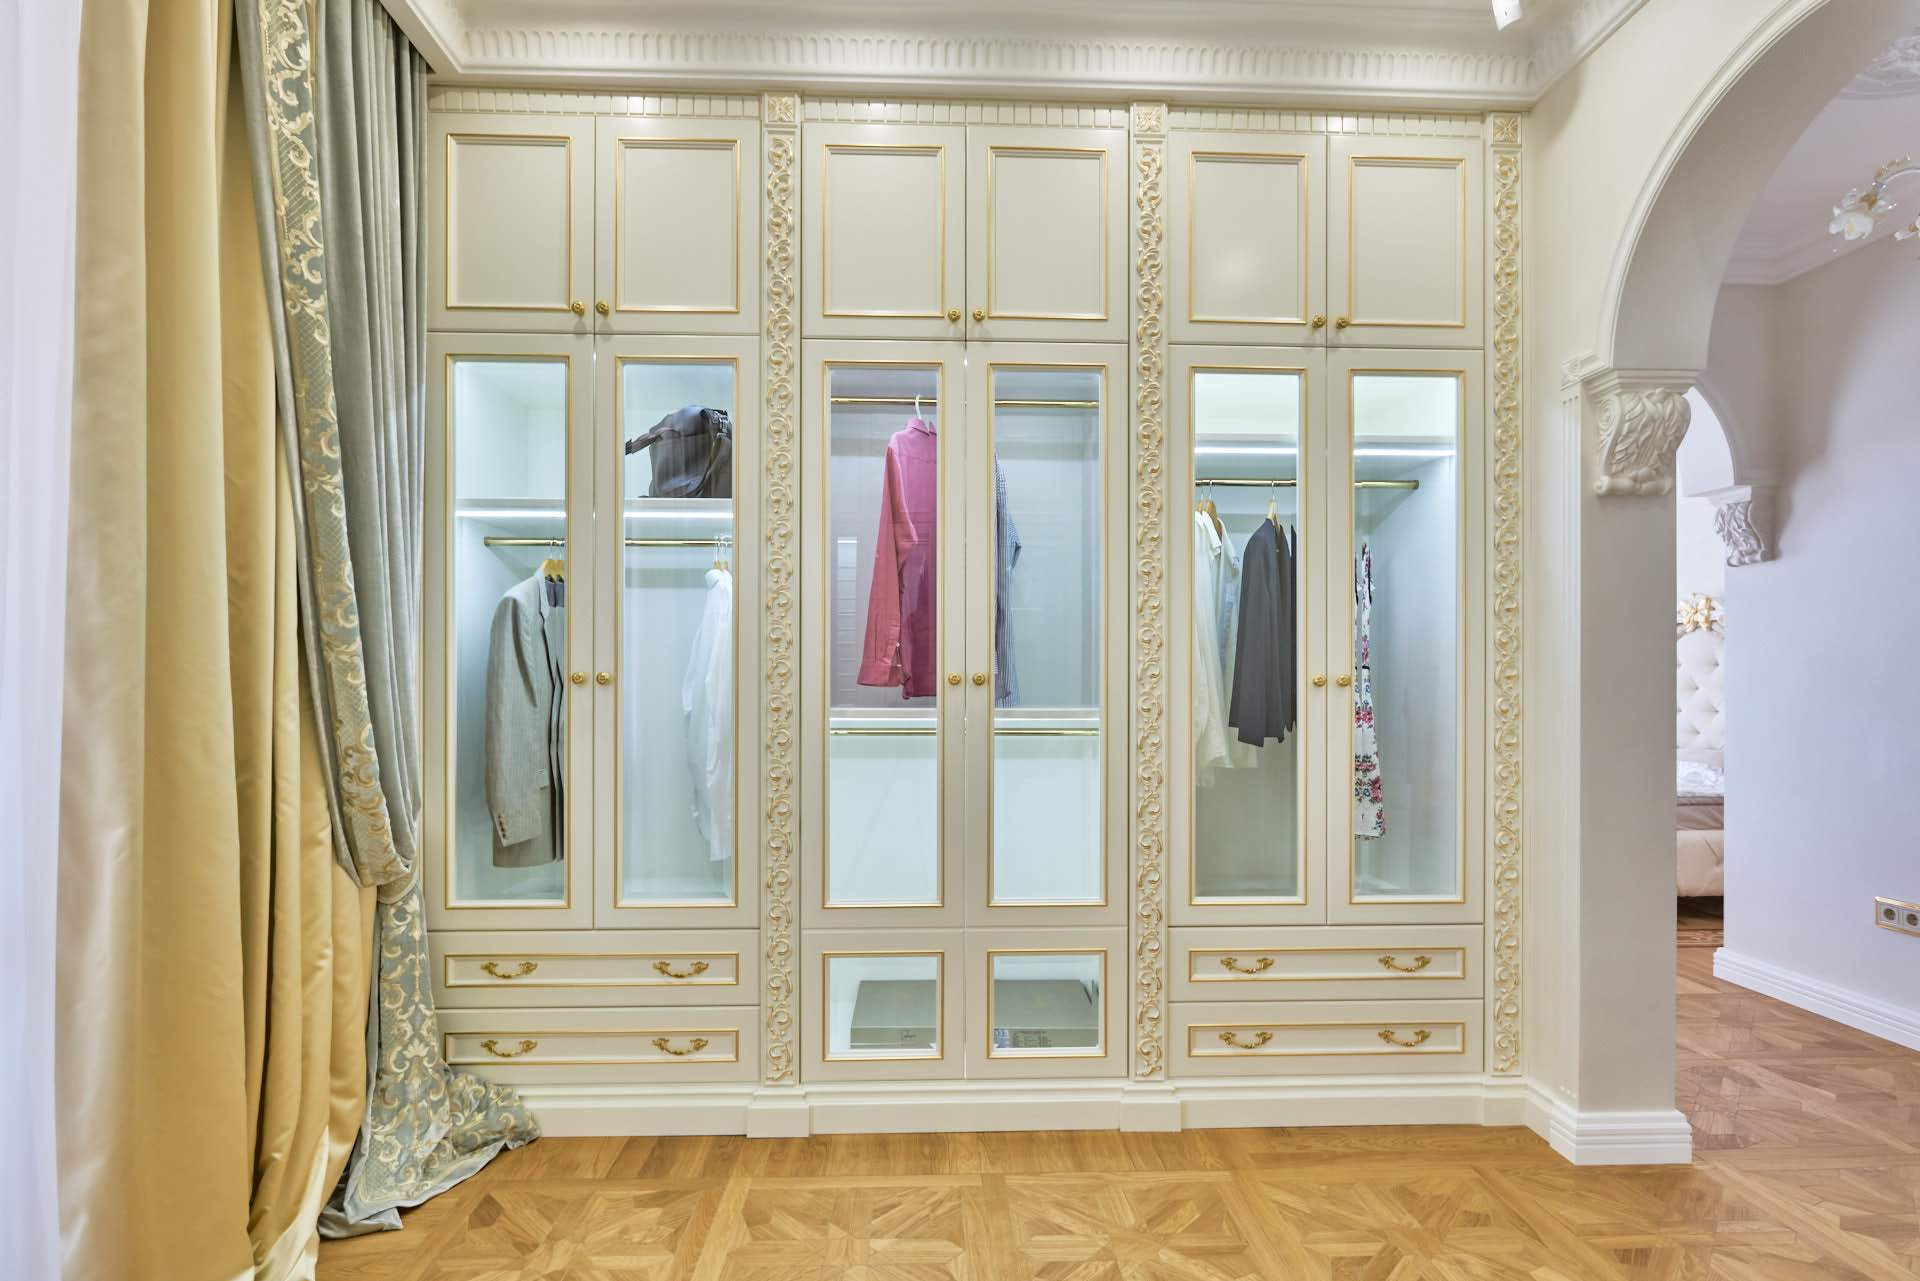 Design, Dressing room in a classic interior